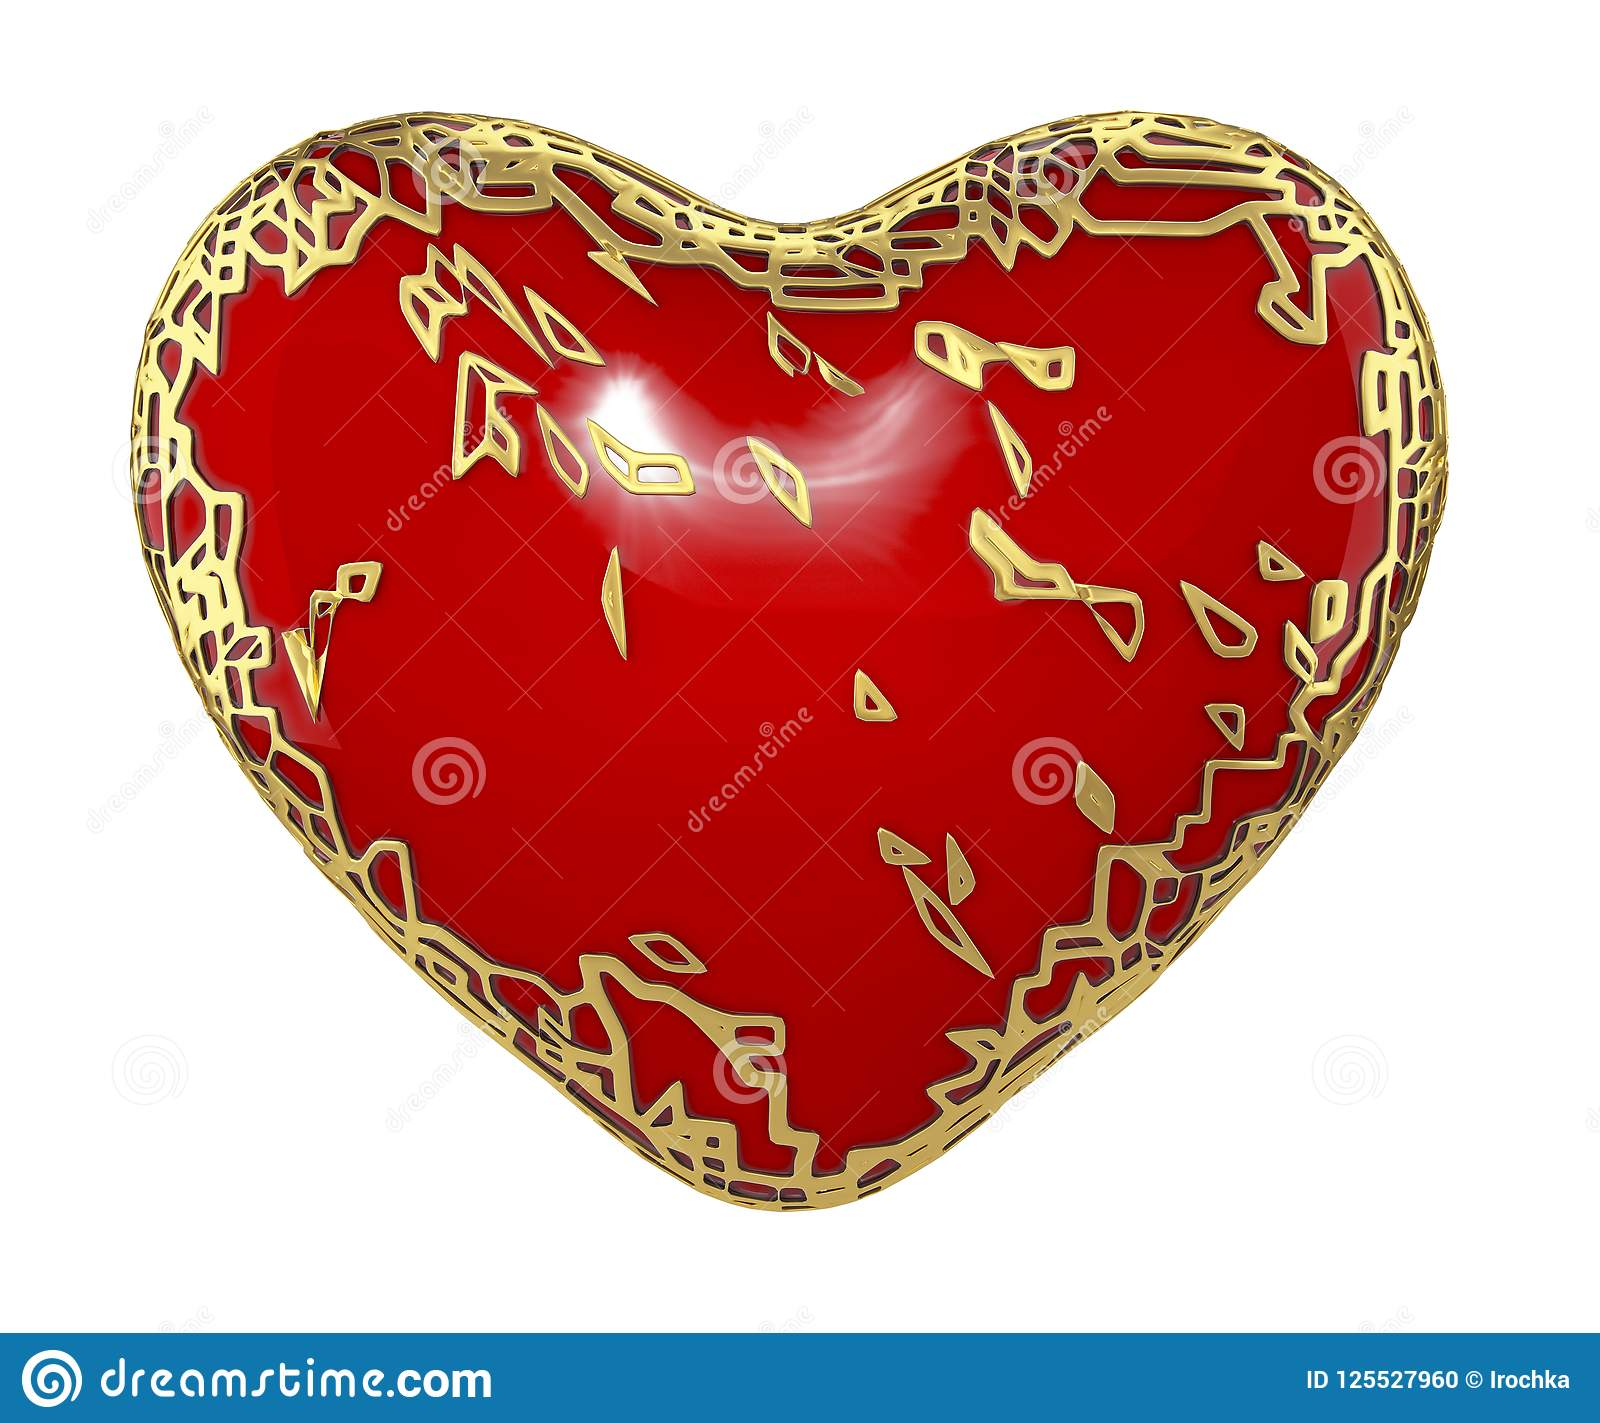 Download Heart Made In Golden Shining Metallic 3D With Red Paint On White Background. Stock Illustration - Illustration of beautiful, heart: 125527960